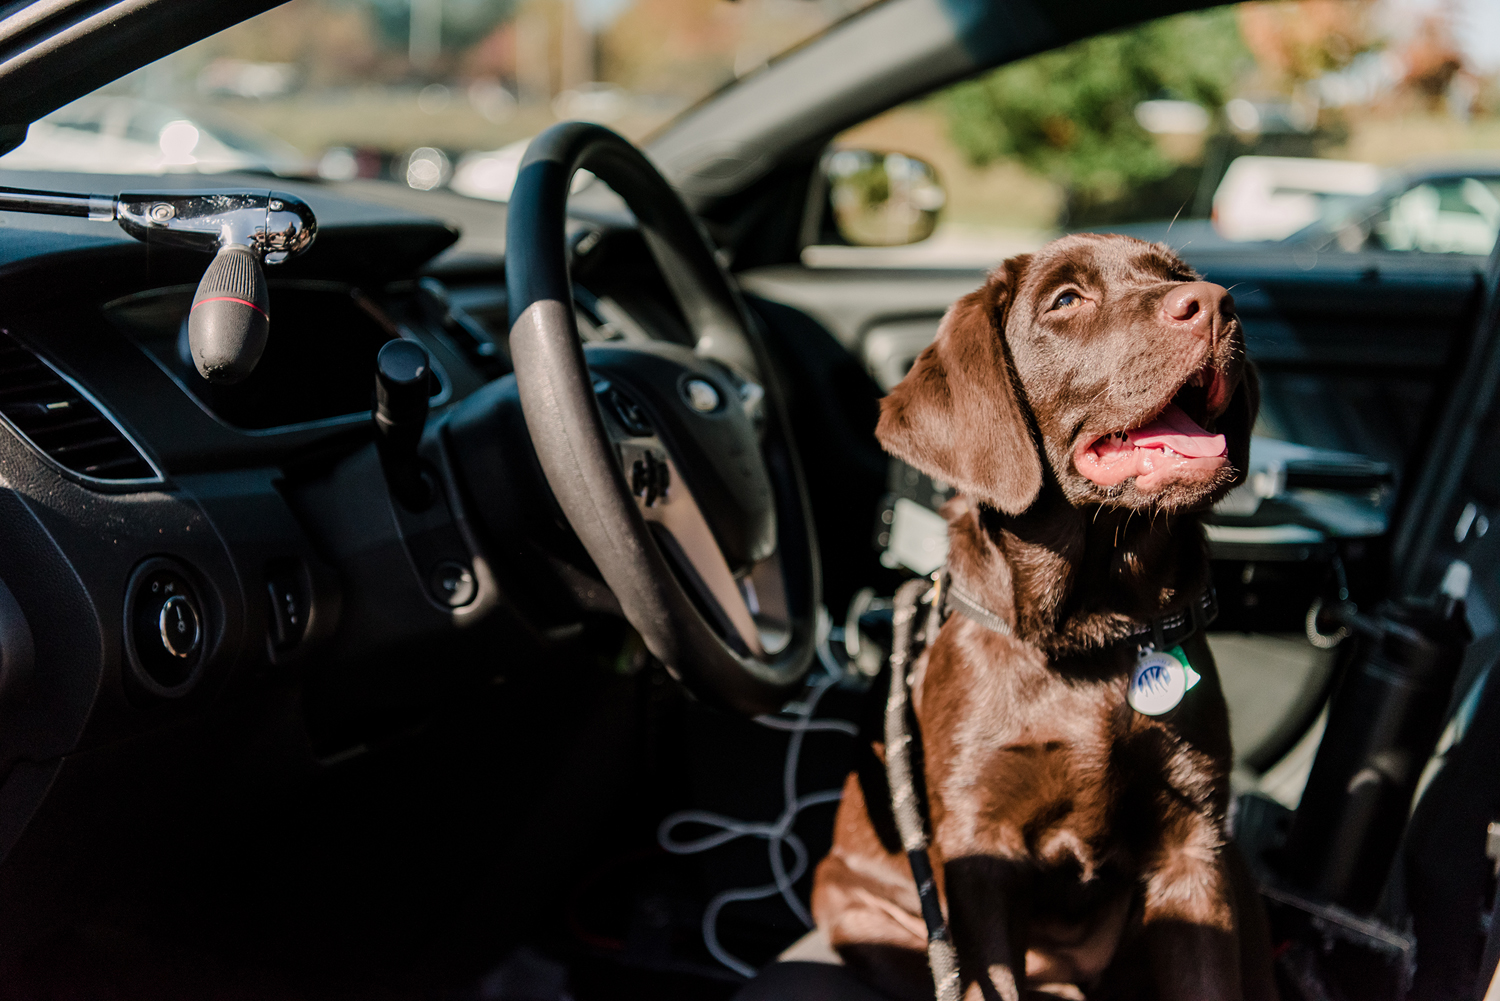 UMBC Police comfort dog Chip sits in the driver's seat of a car